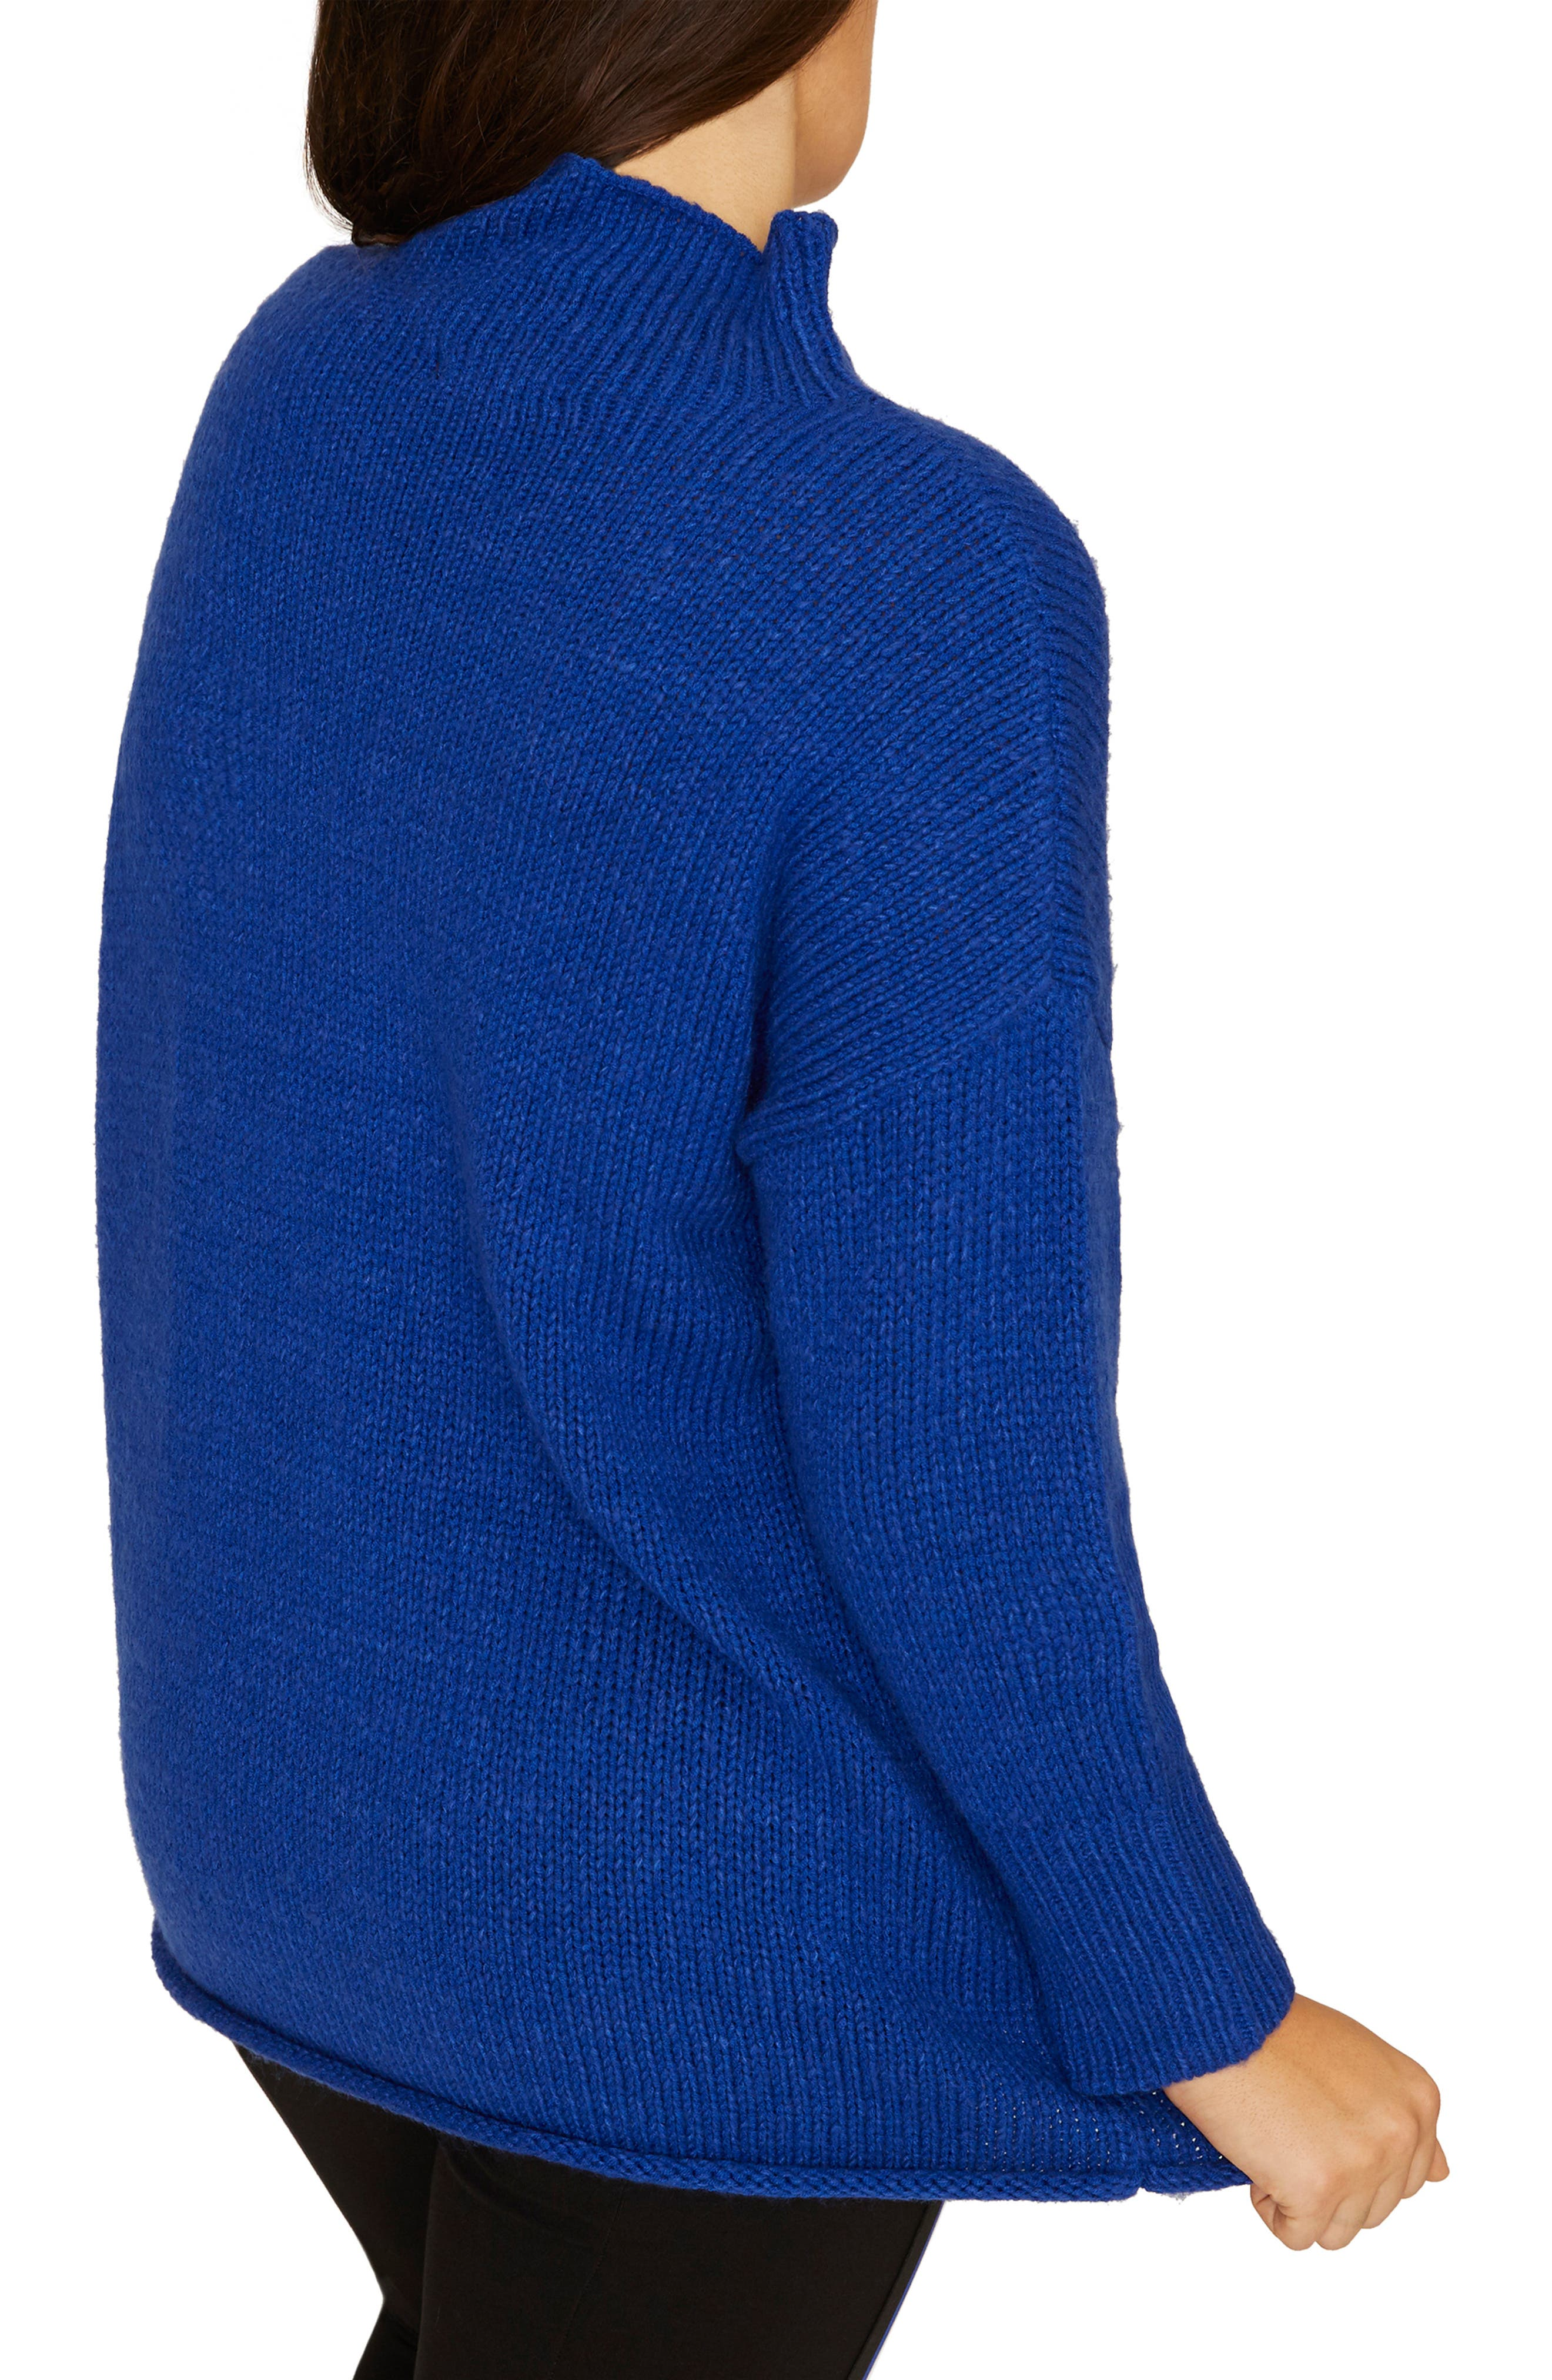 SANCTUARY, Supersized Curl Up Sweater, Alternate thumbnail 2, color, ELECTRIC BLUE